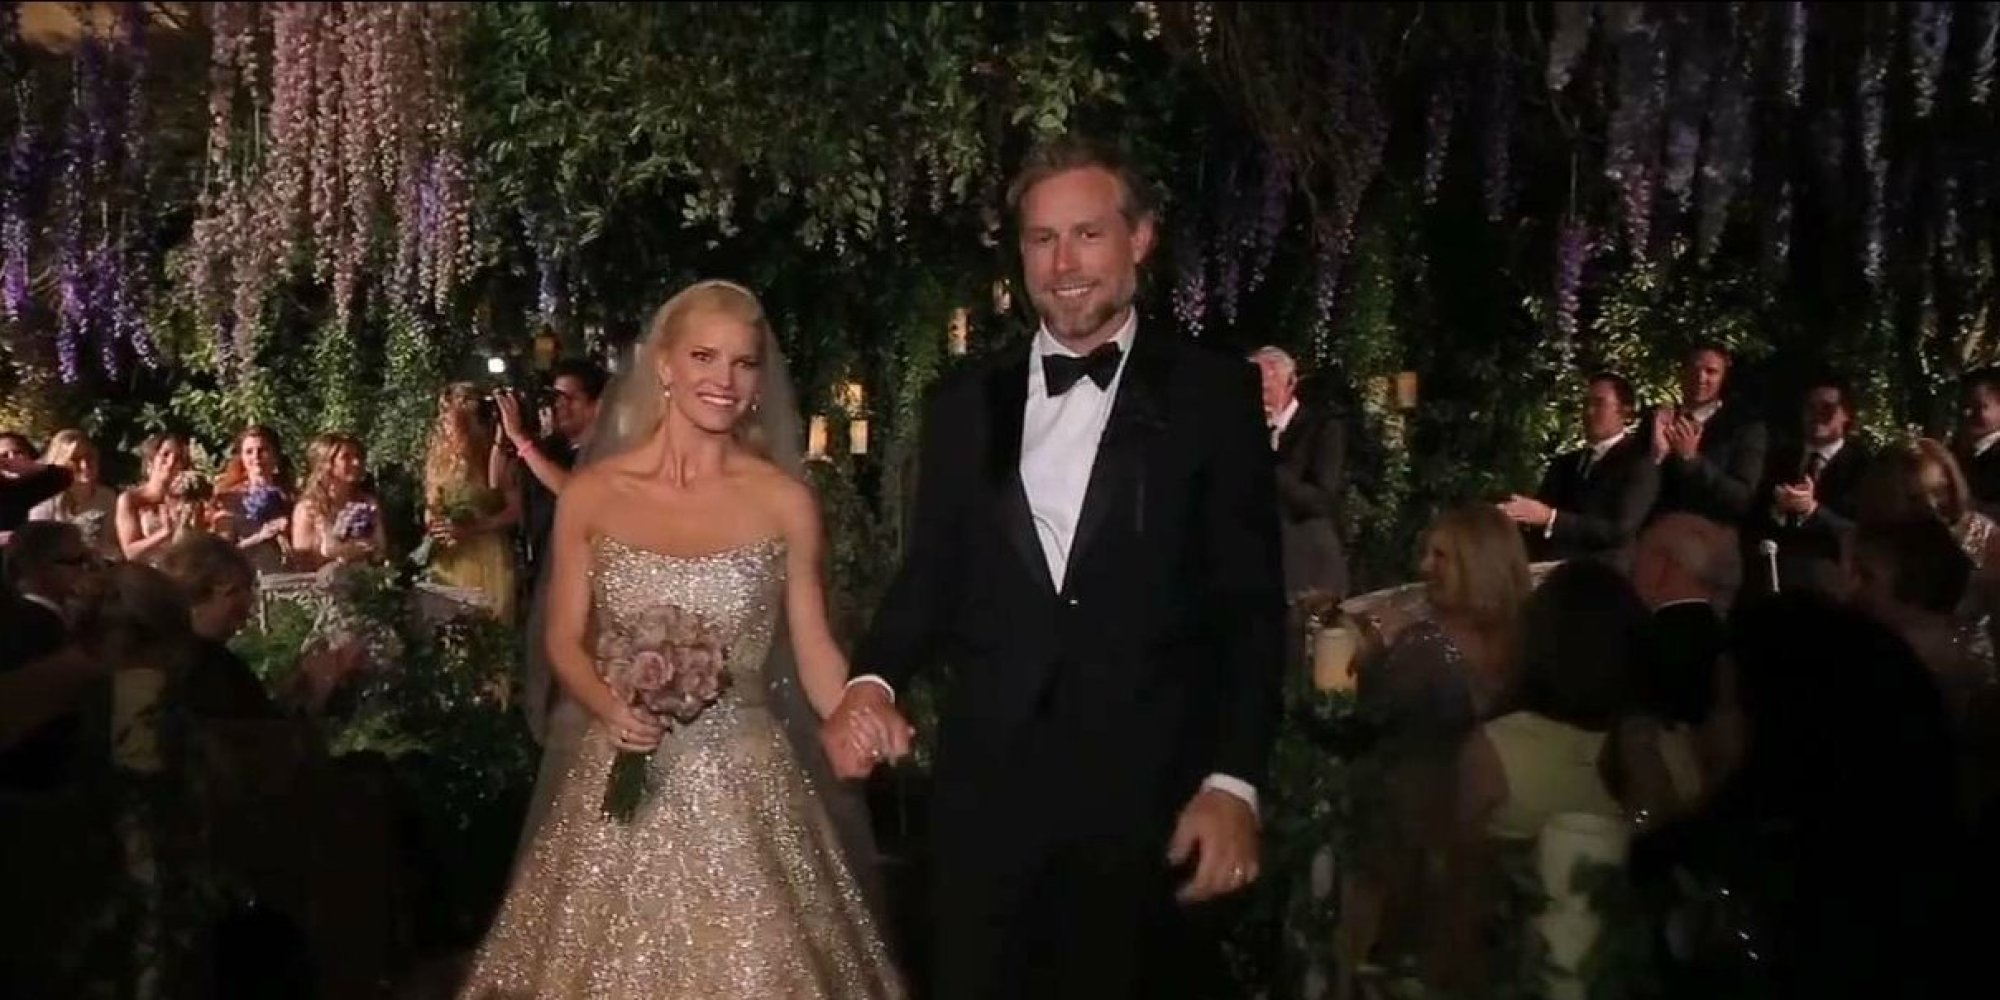 Jessica Simpsons Wedding Video Has Arrived And Its As Amazing As You Expected It To Be